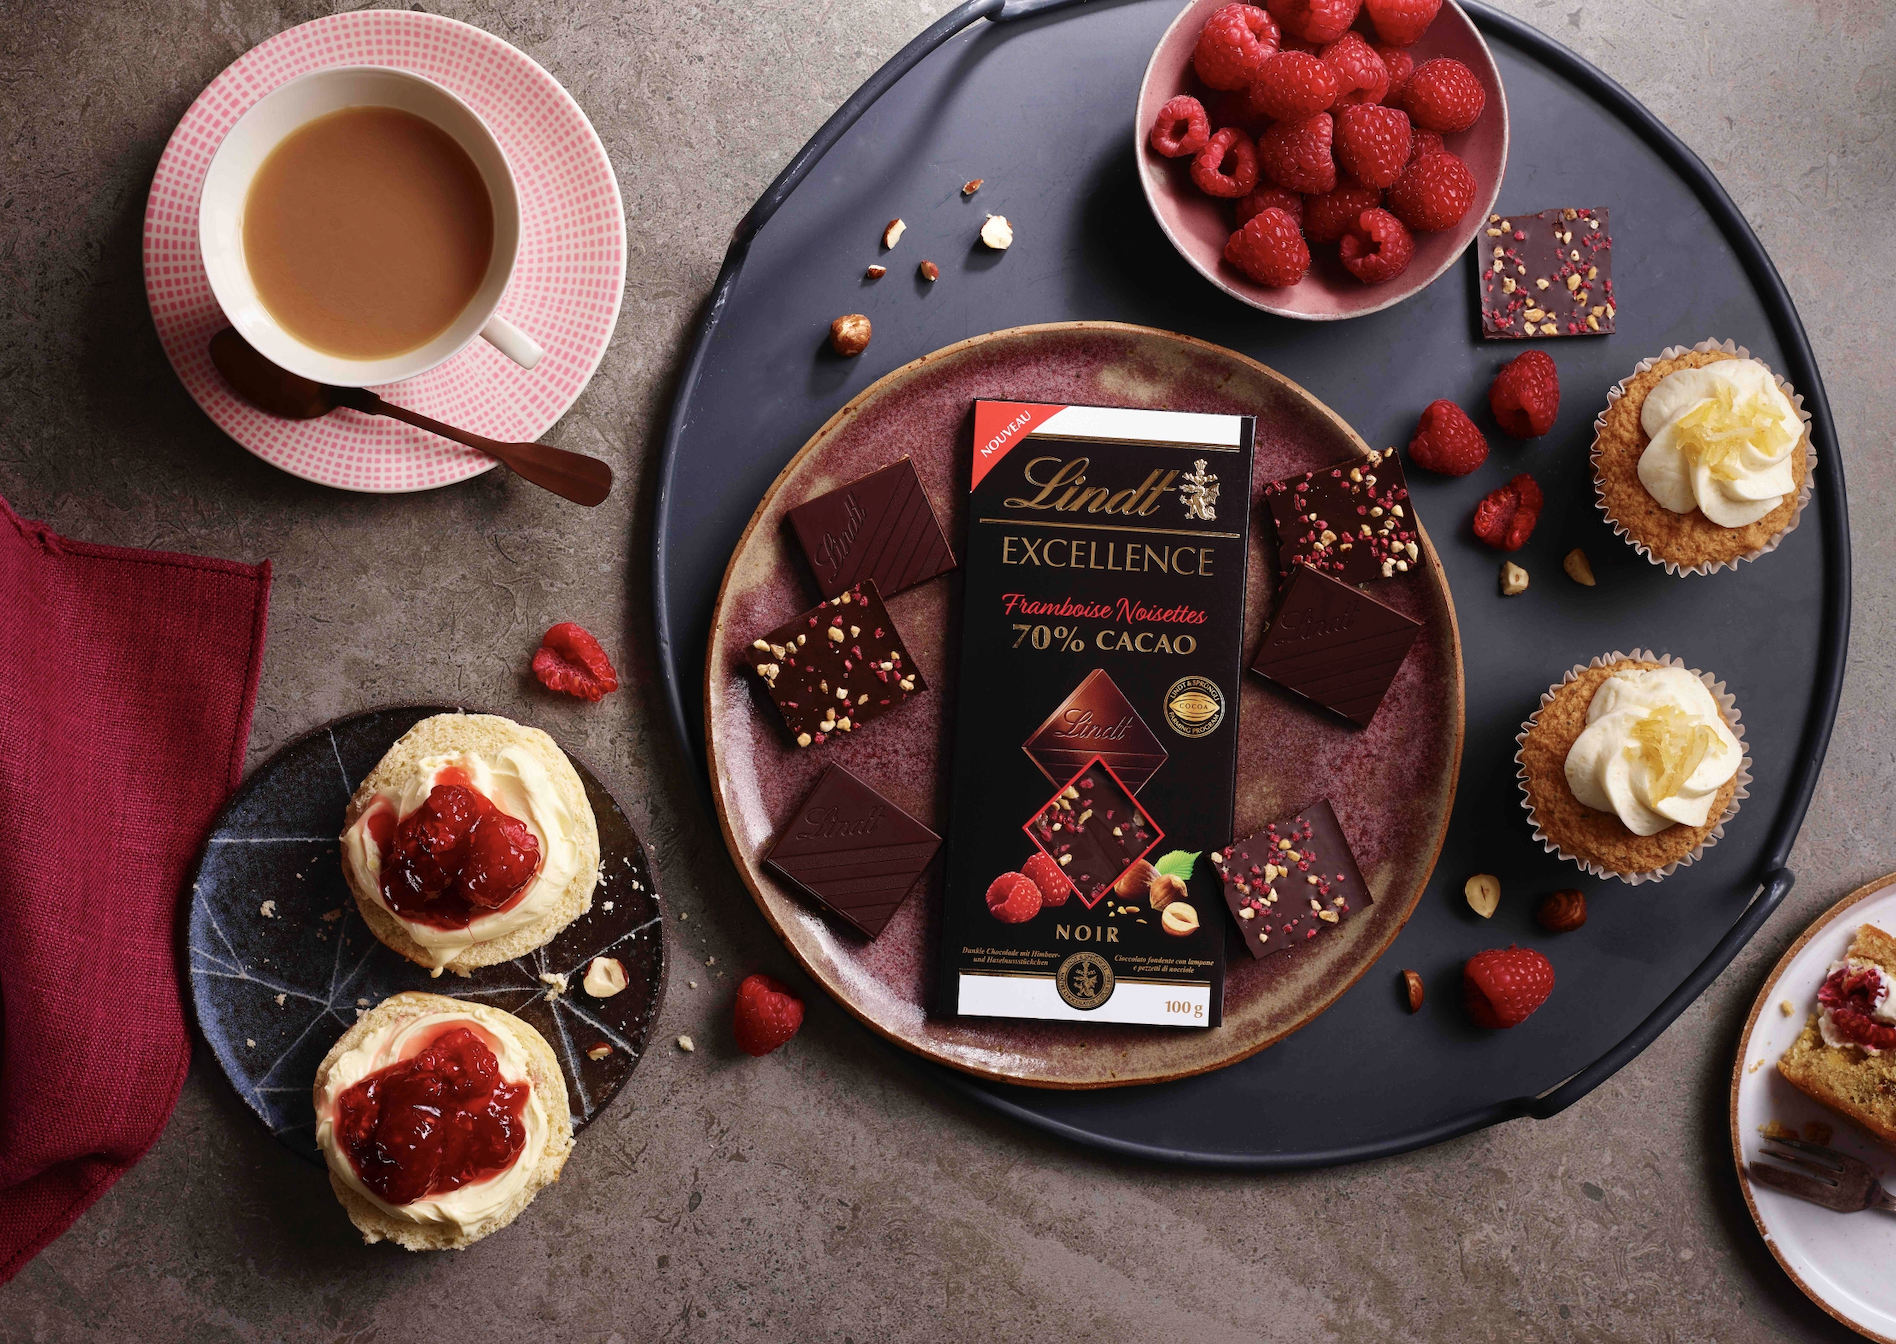 The LINDT EXCELLENCE Virtual Tasting Experience m makes a great gift and is available to buy online from 11th Feb